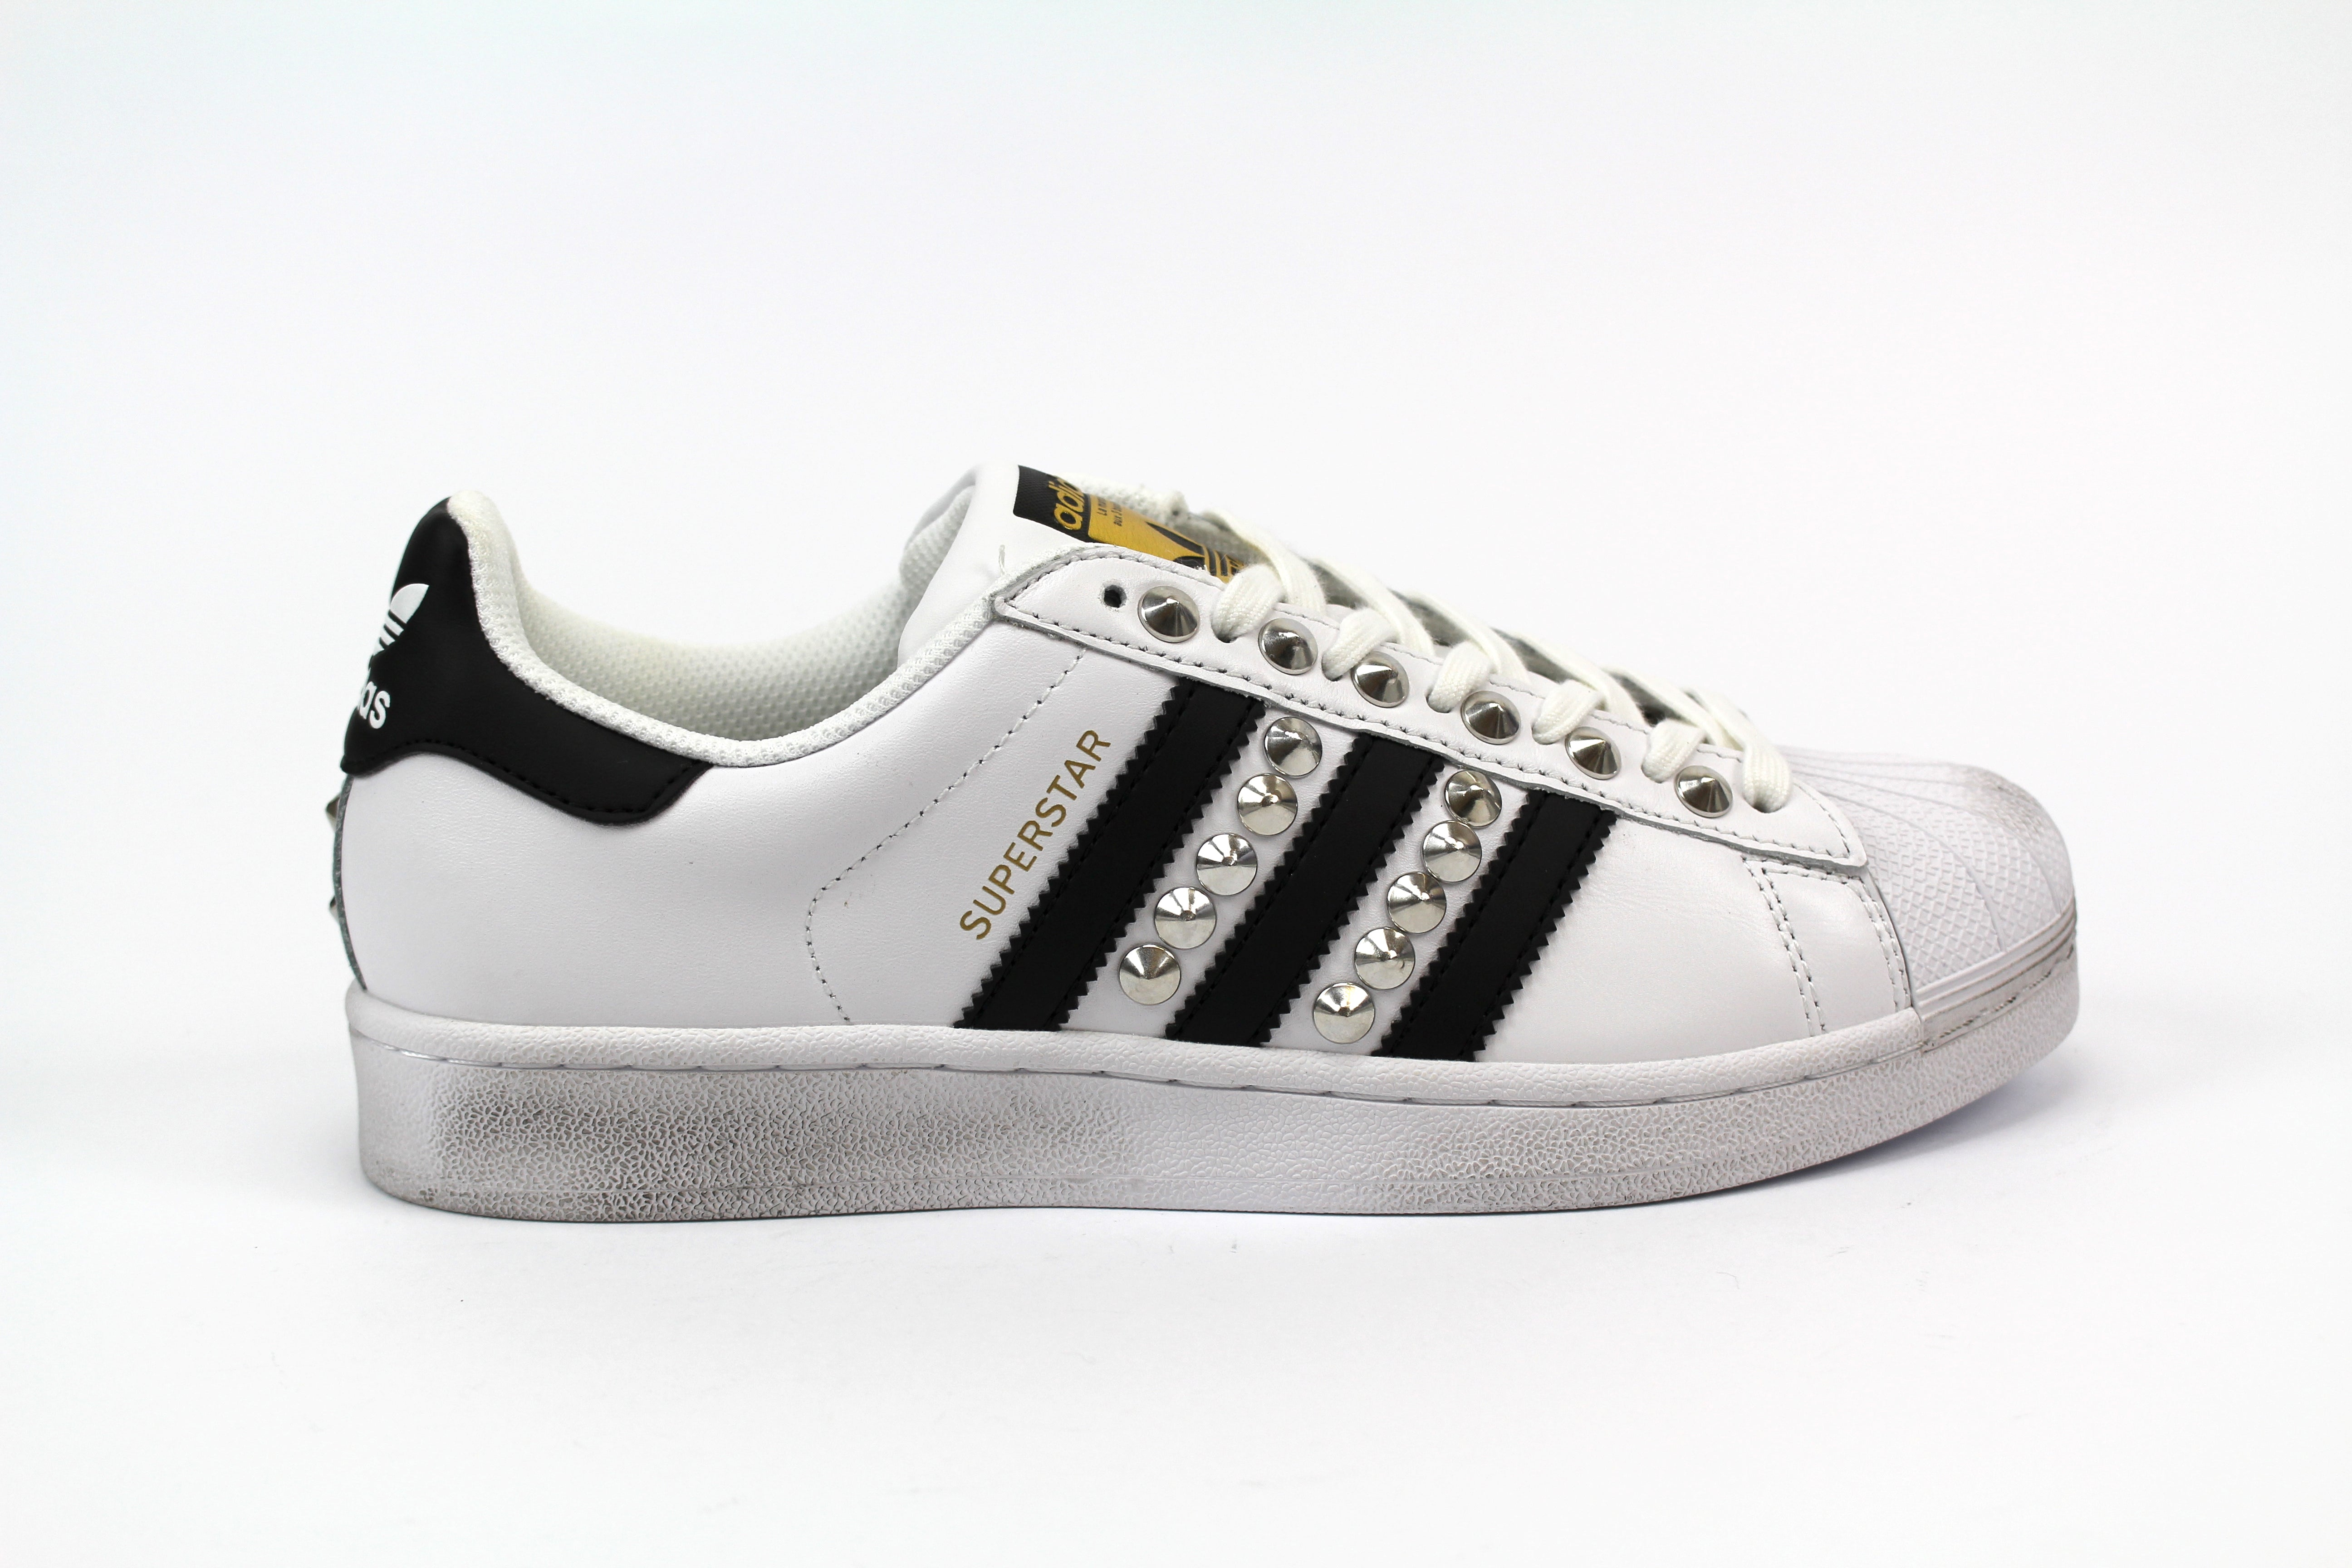 Adidas Superstar Personalizzate